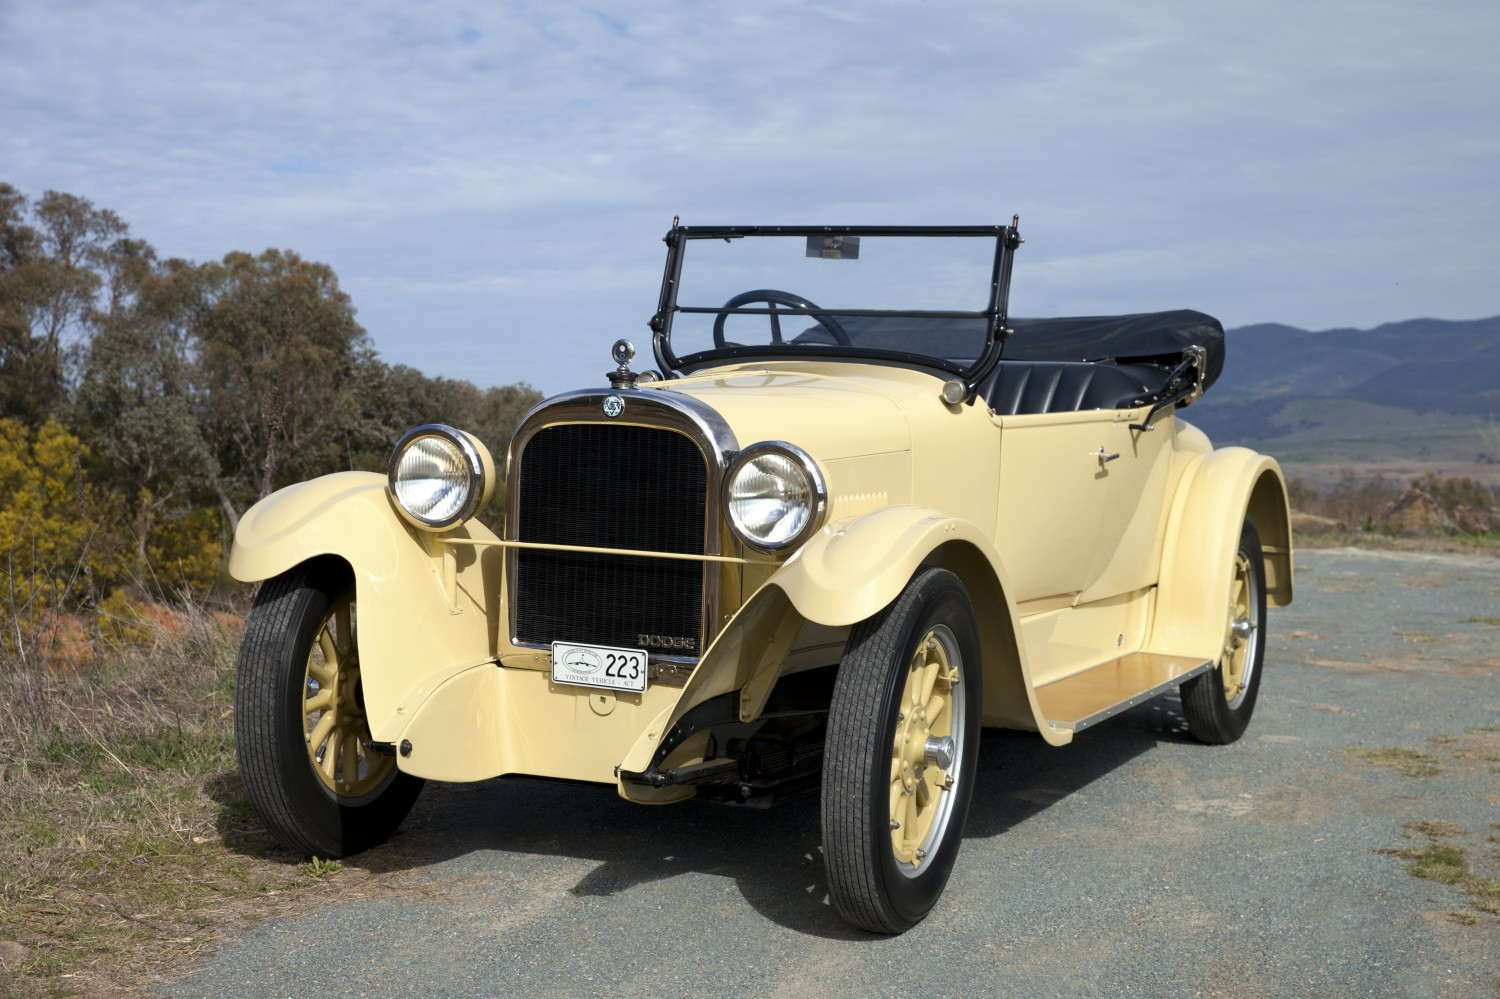 1925 Dodge no model designation